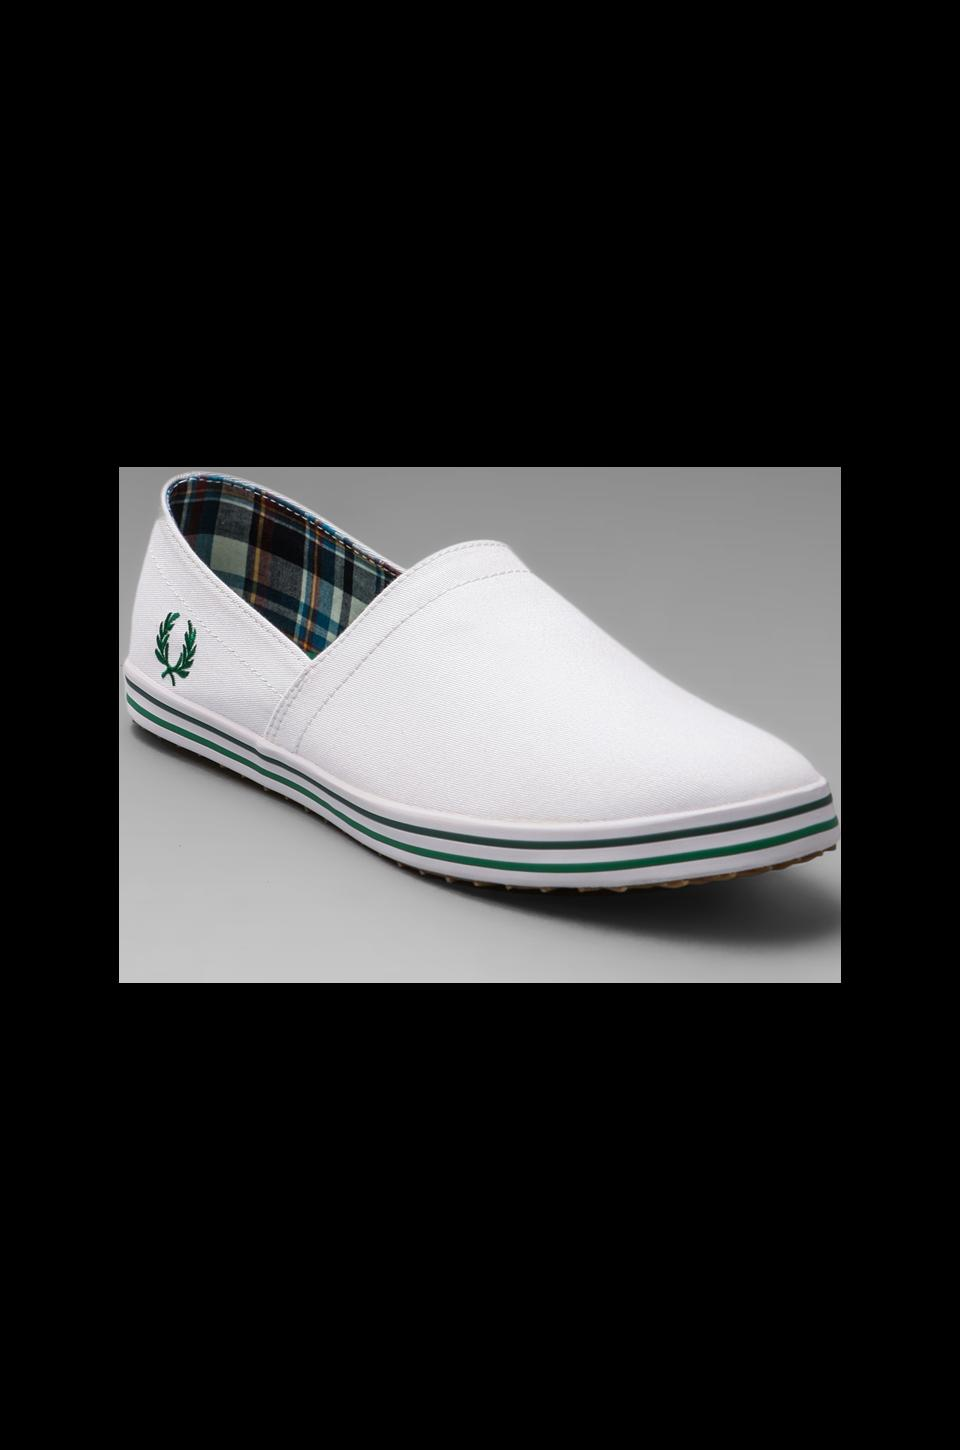 Fred Perry Kingston Stampdown Twill Slip On in White/Privet/Ivy